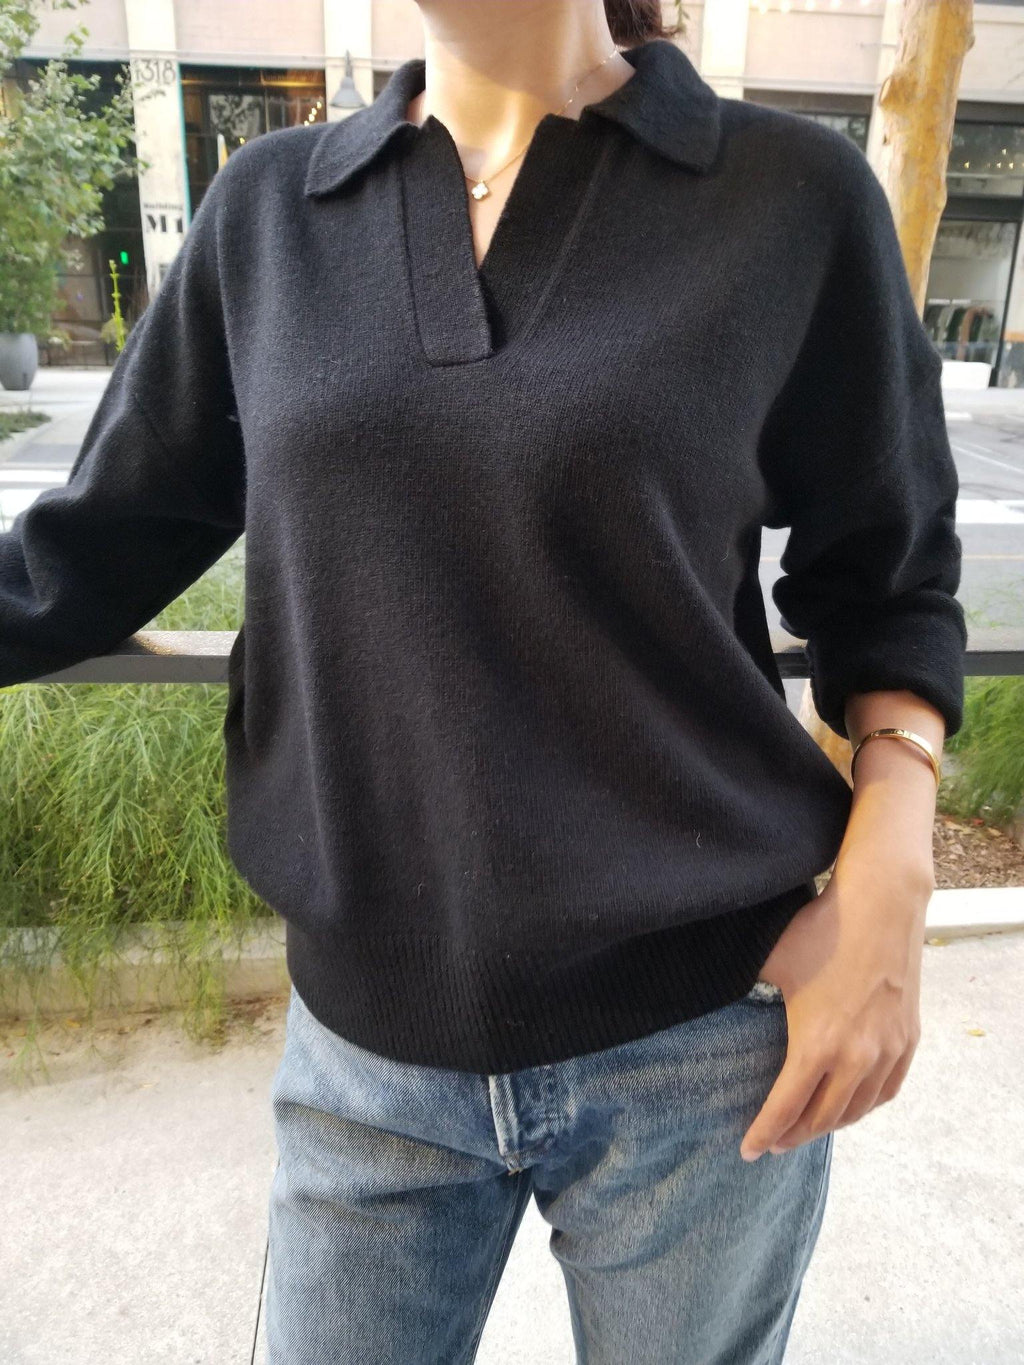 Le Bon Shoppe Nanette Sweater Top - Ebony - Vincent Park